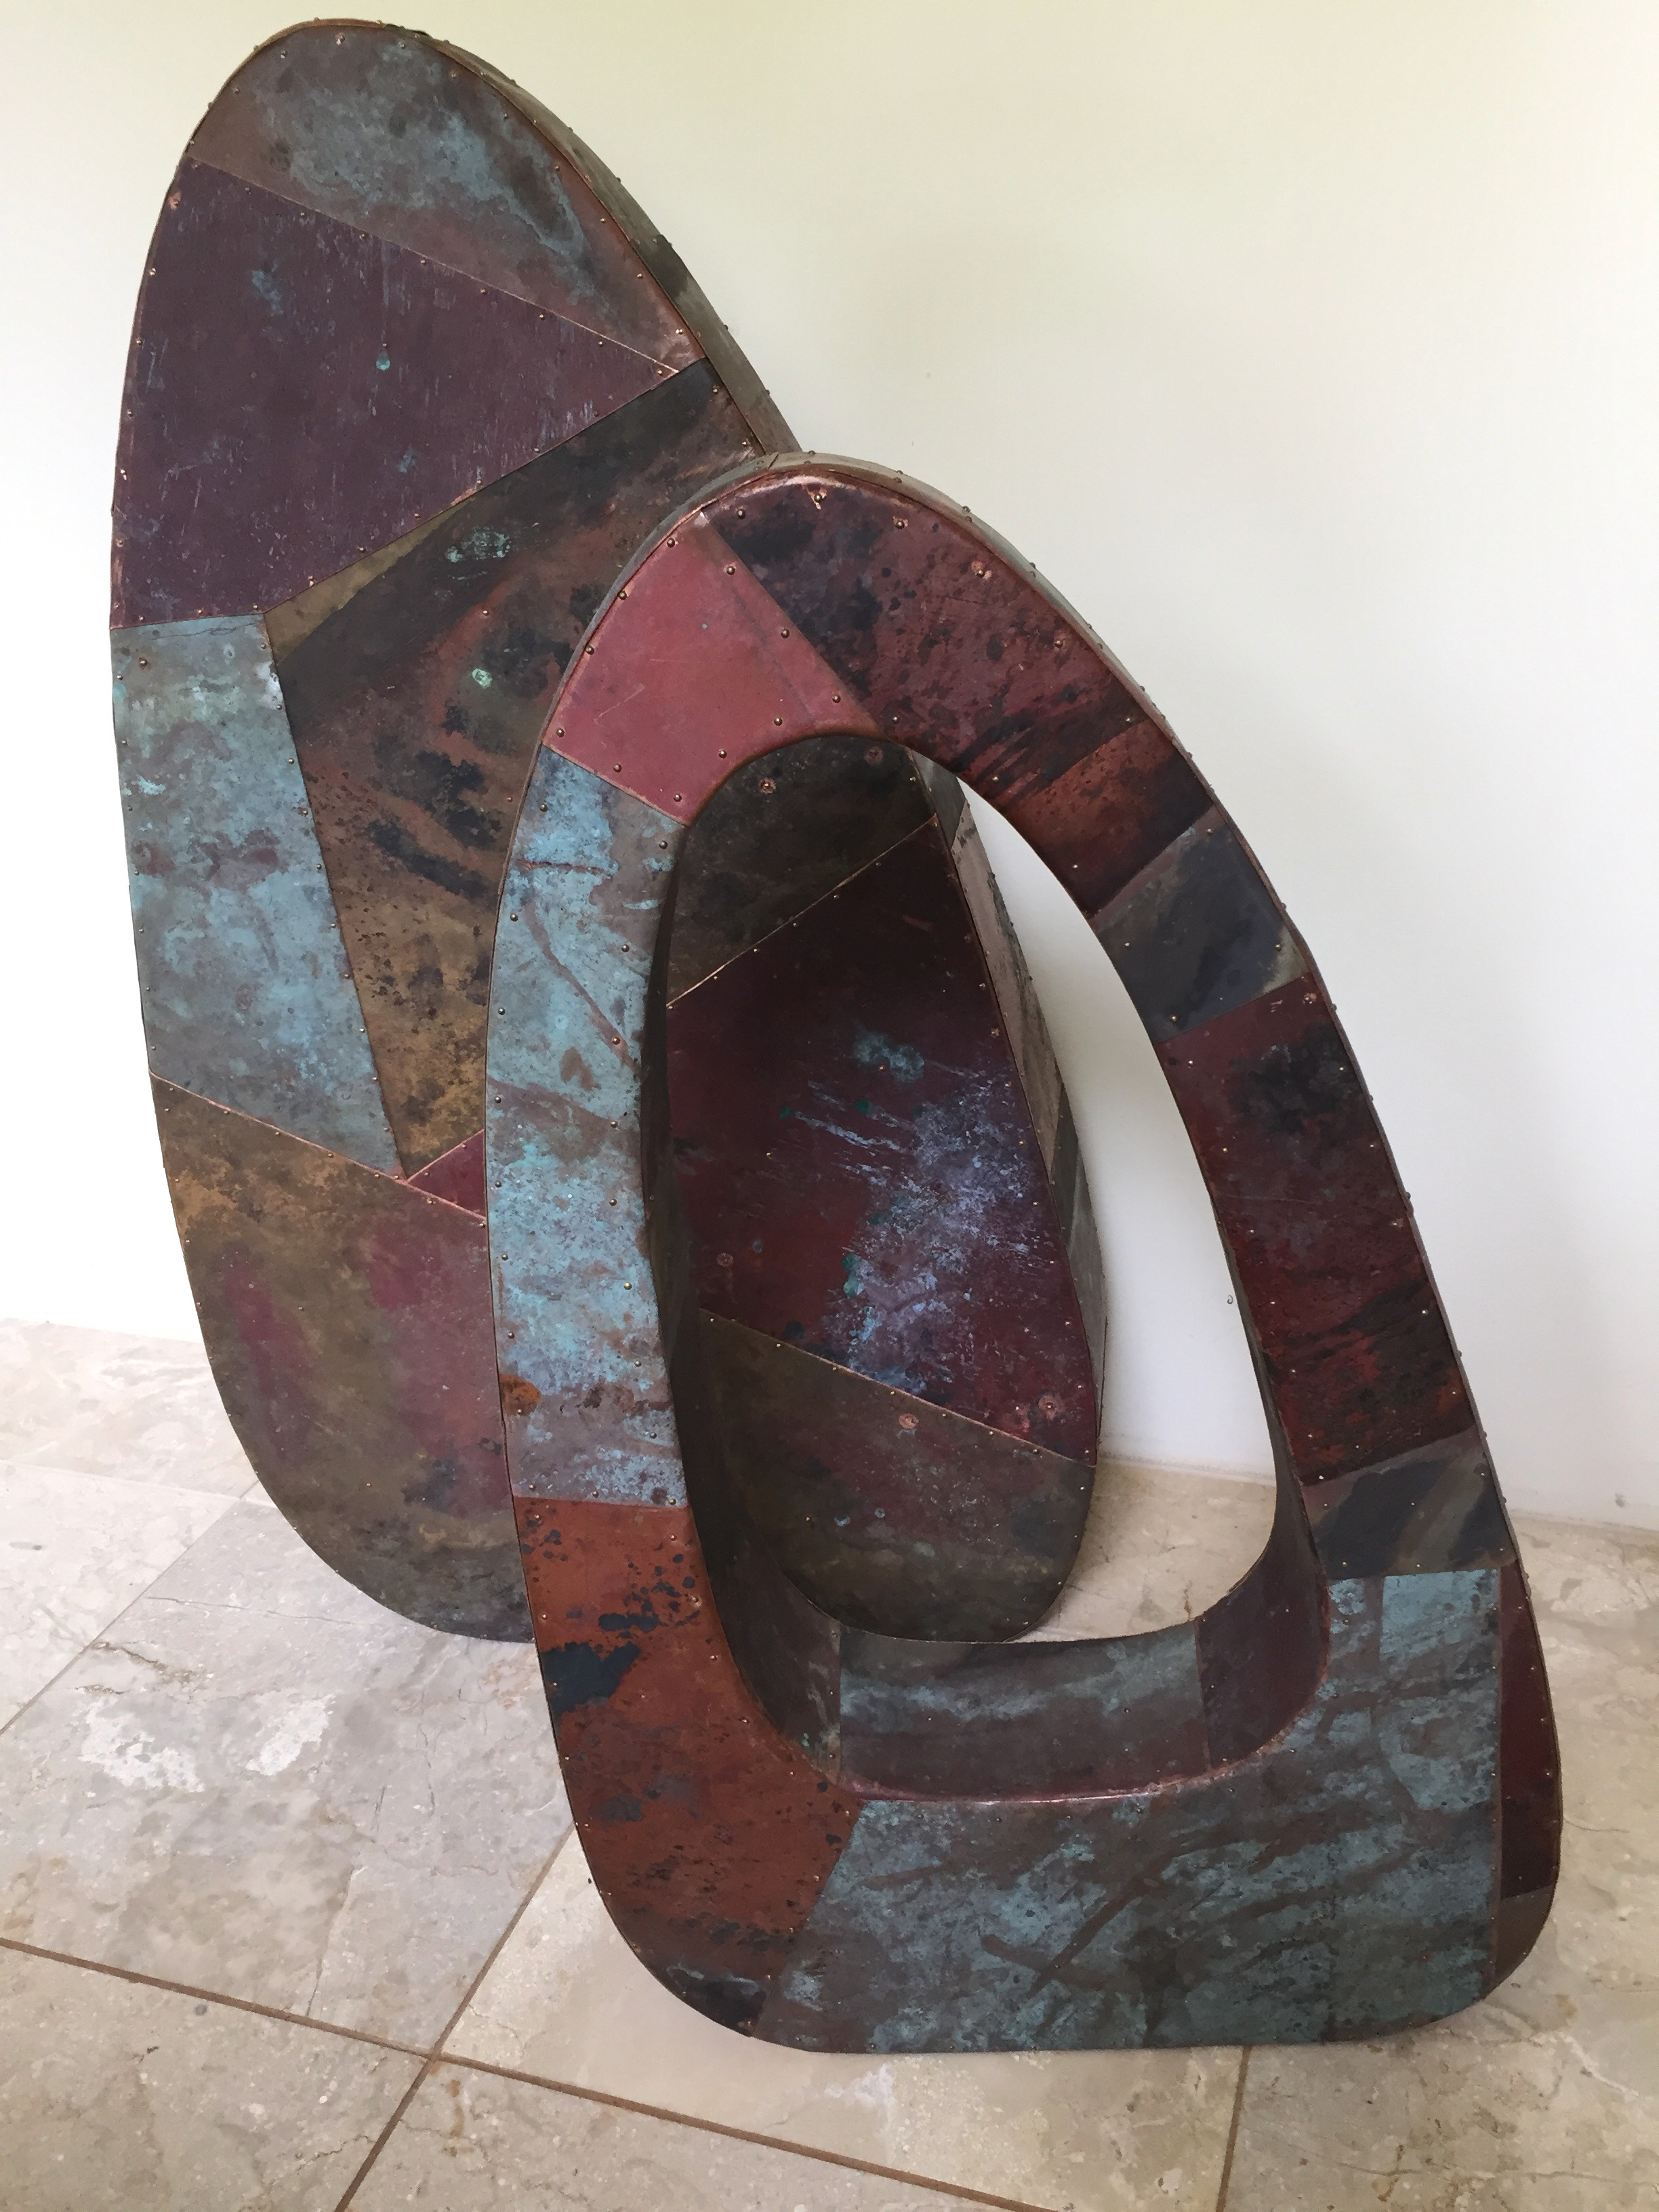 Barclay Hill,  artisan member of the Maui Crafts Guild,  and showing at the Hui juried competition 2019